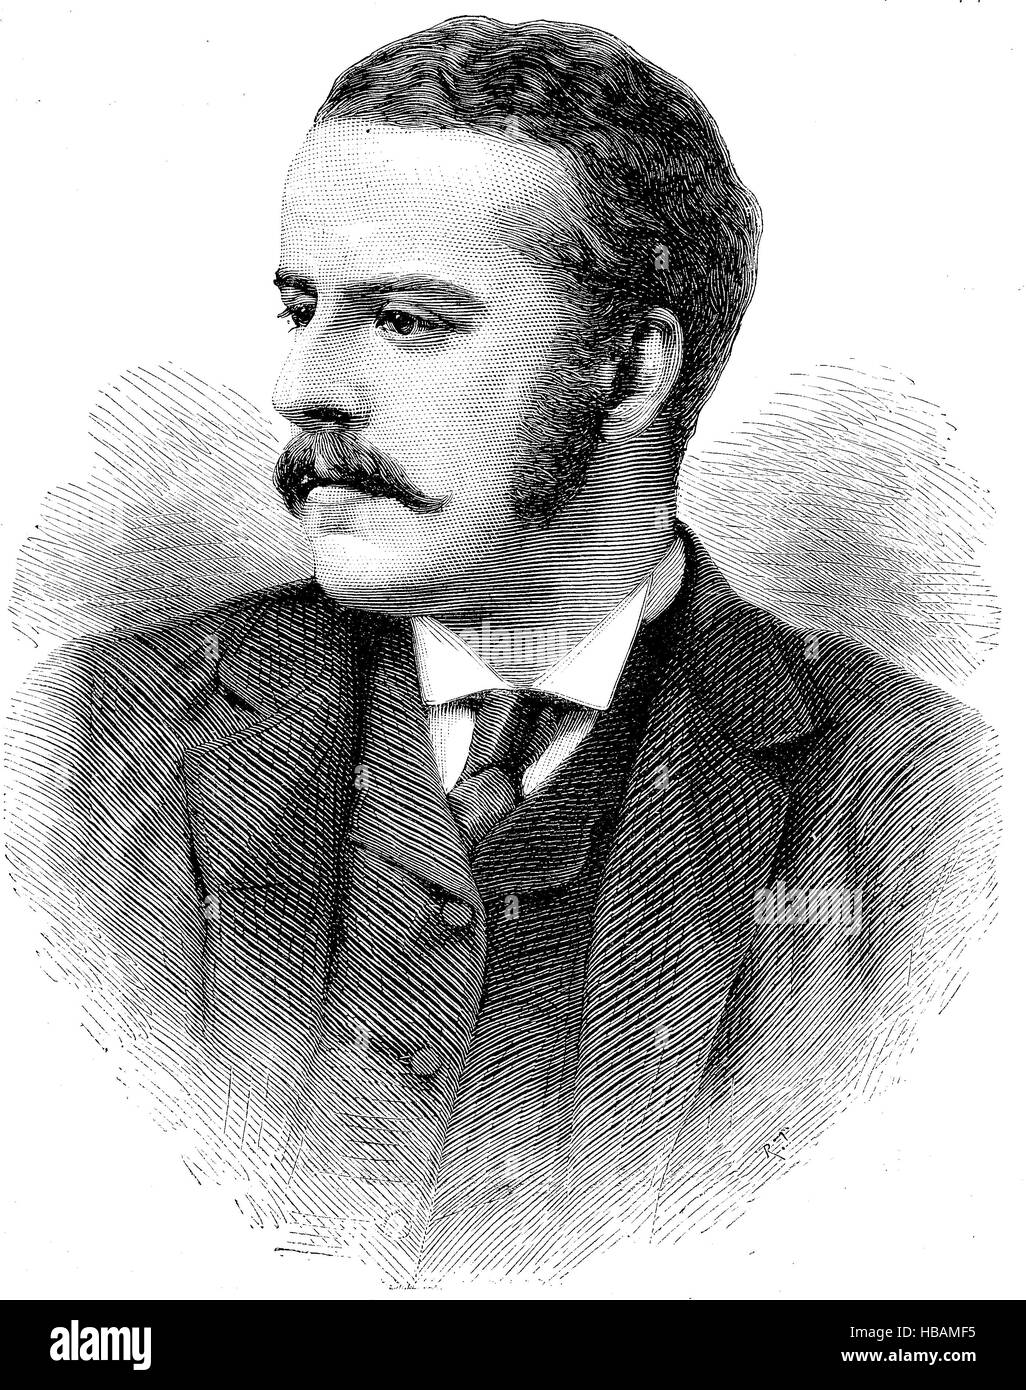 Alexander William George Duff, 1st Duke of Fife, 1849 -1912, hictorical illustration from 1880 - Stock Image